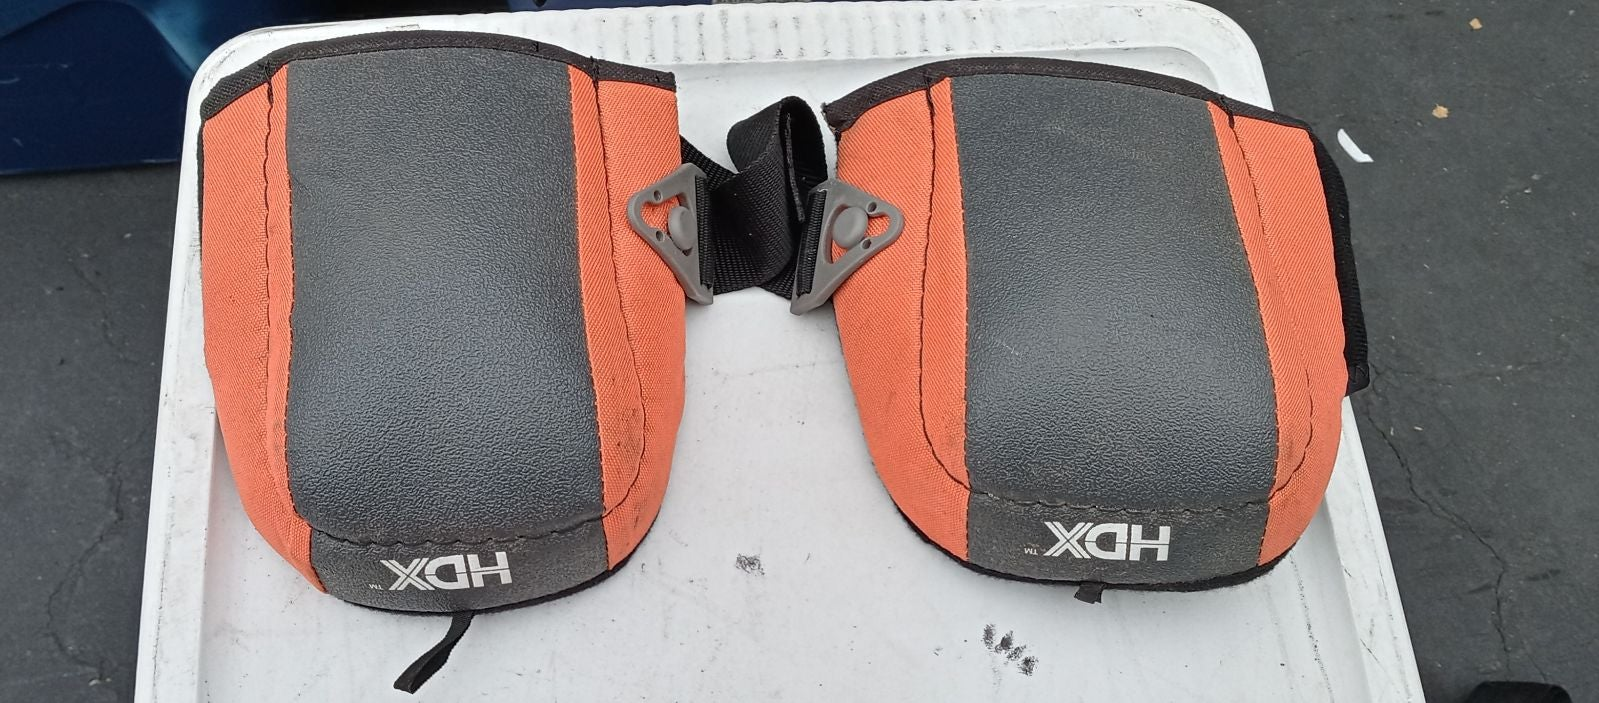 KNEE PADS WITH COMFORTABLE GRIP